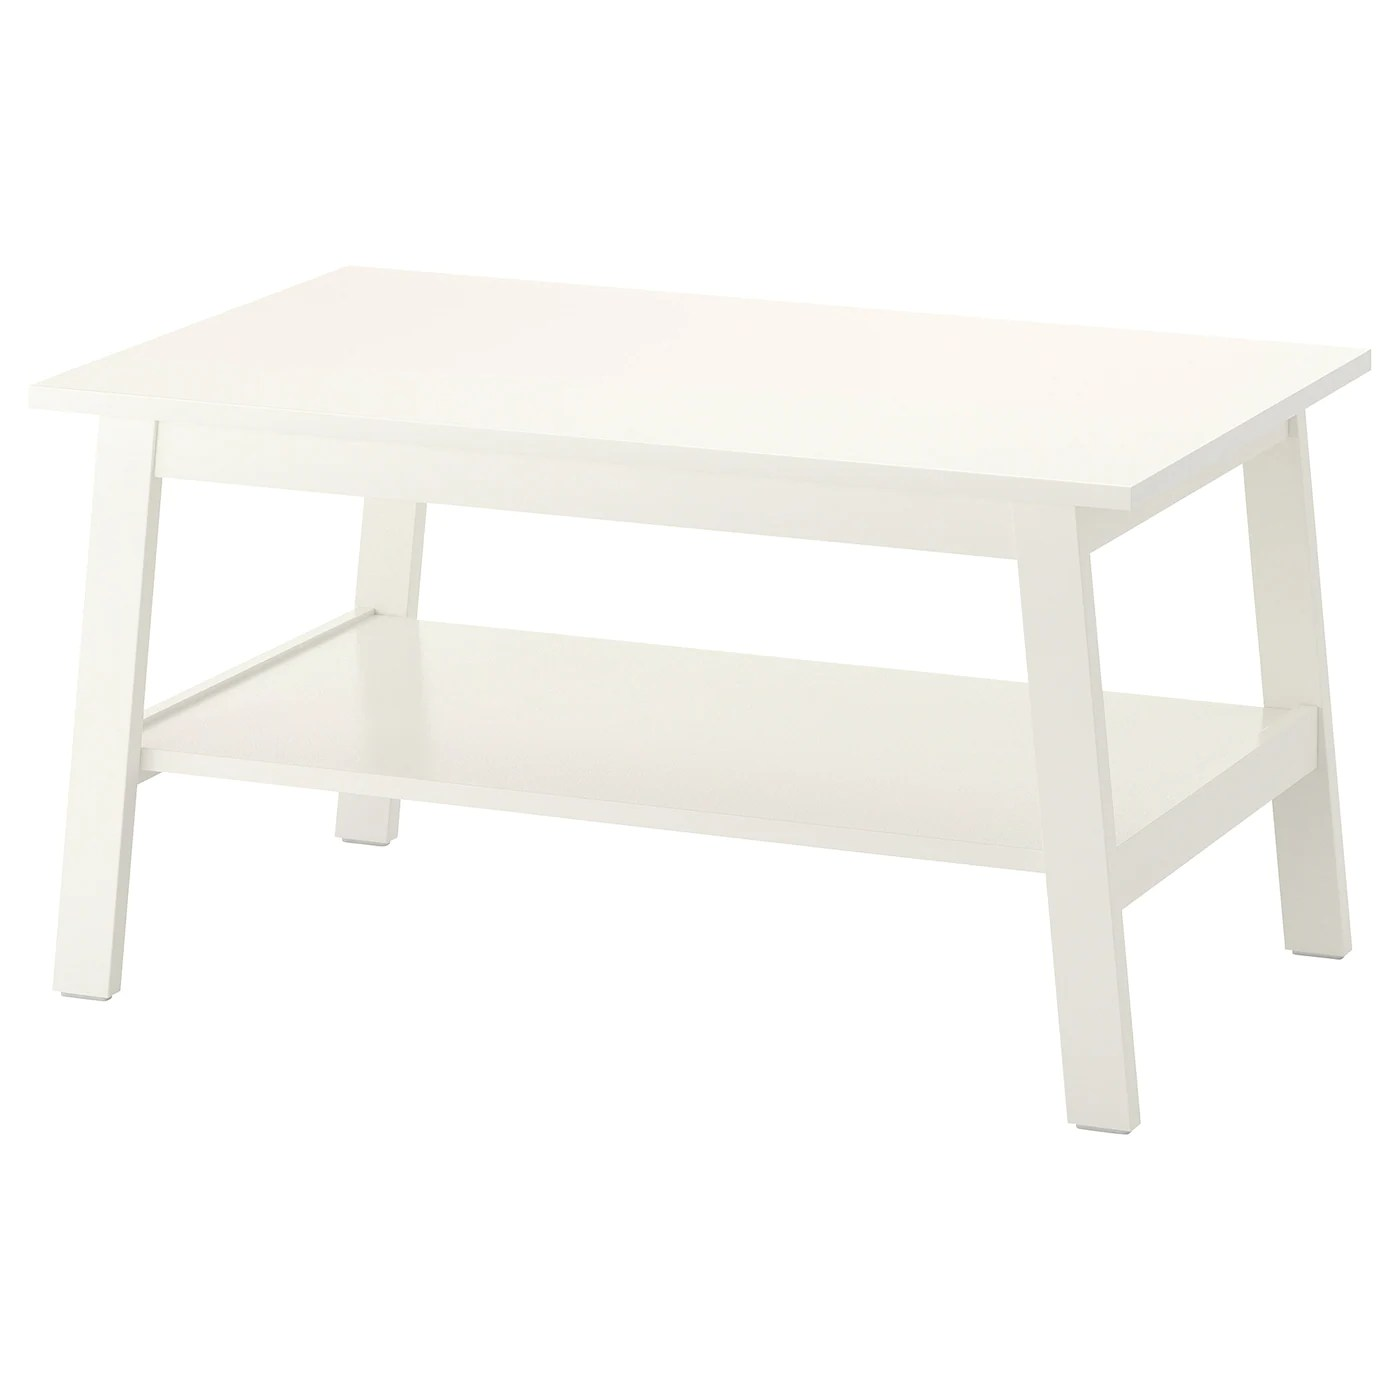 Table Basse Ikea Ronde Tables Basses Design En Bois En Verre Blanches Ikea